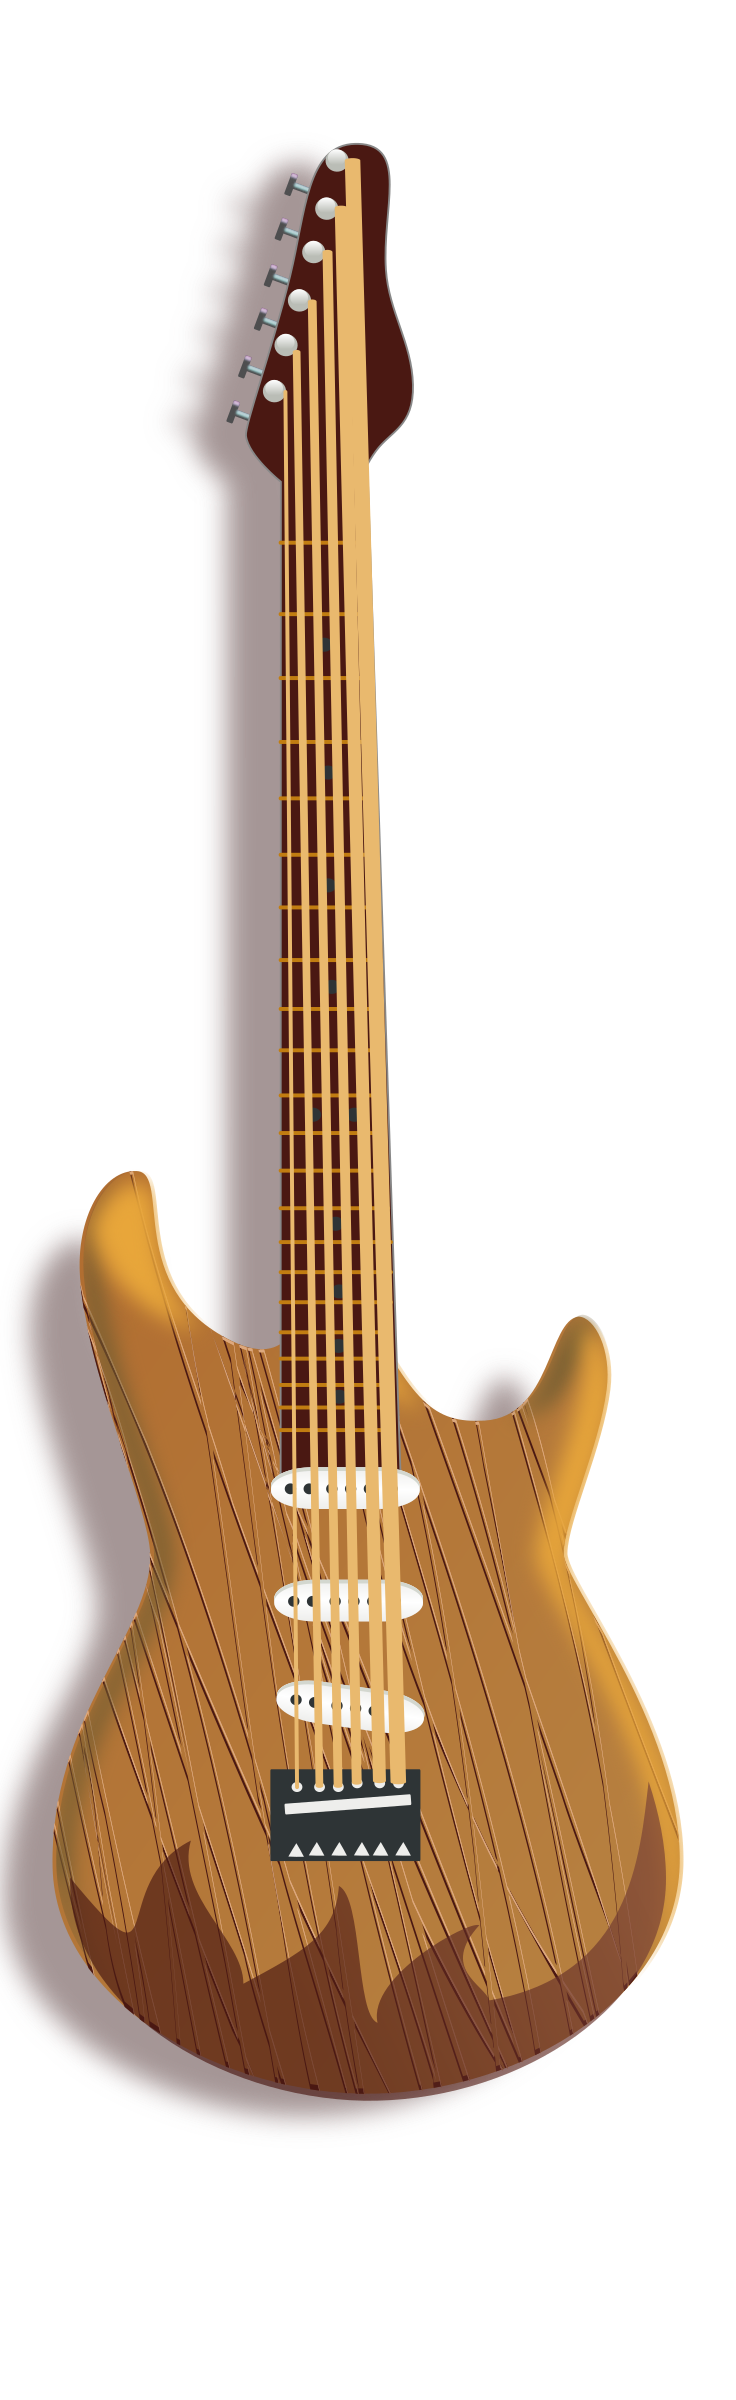 wood guitar by rg1024